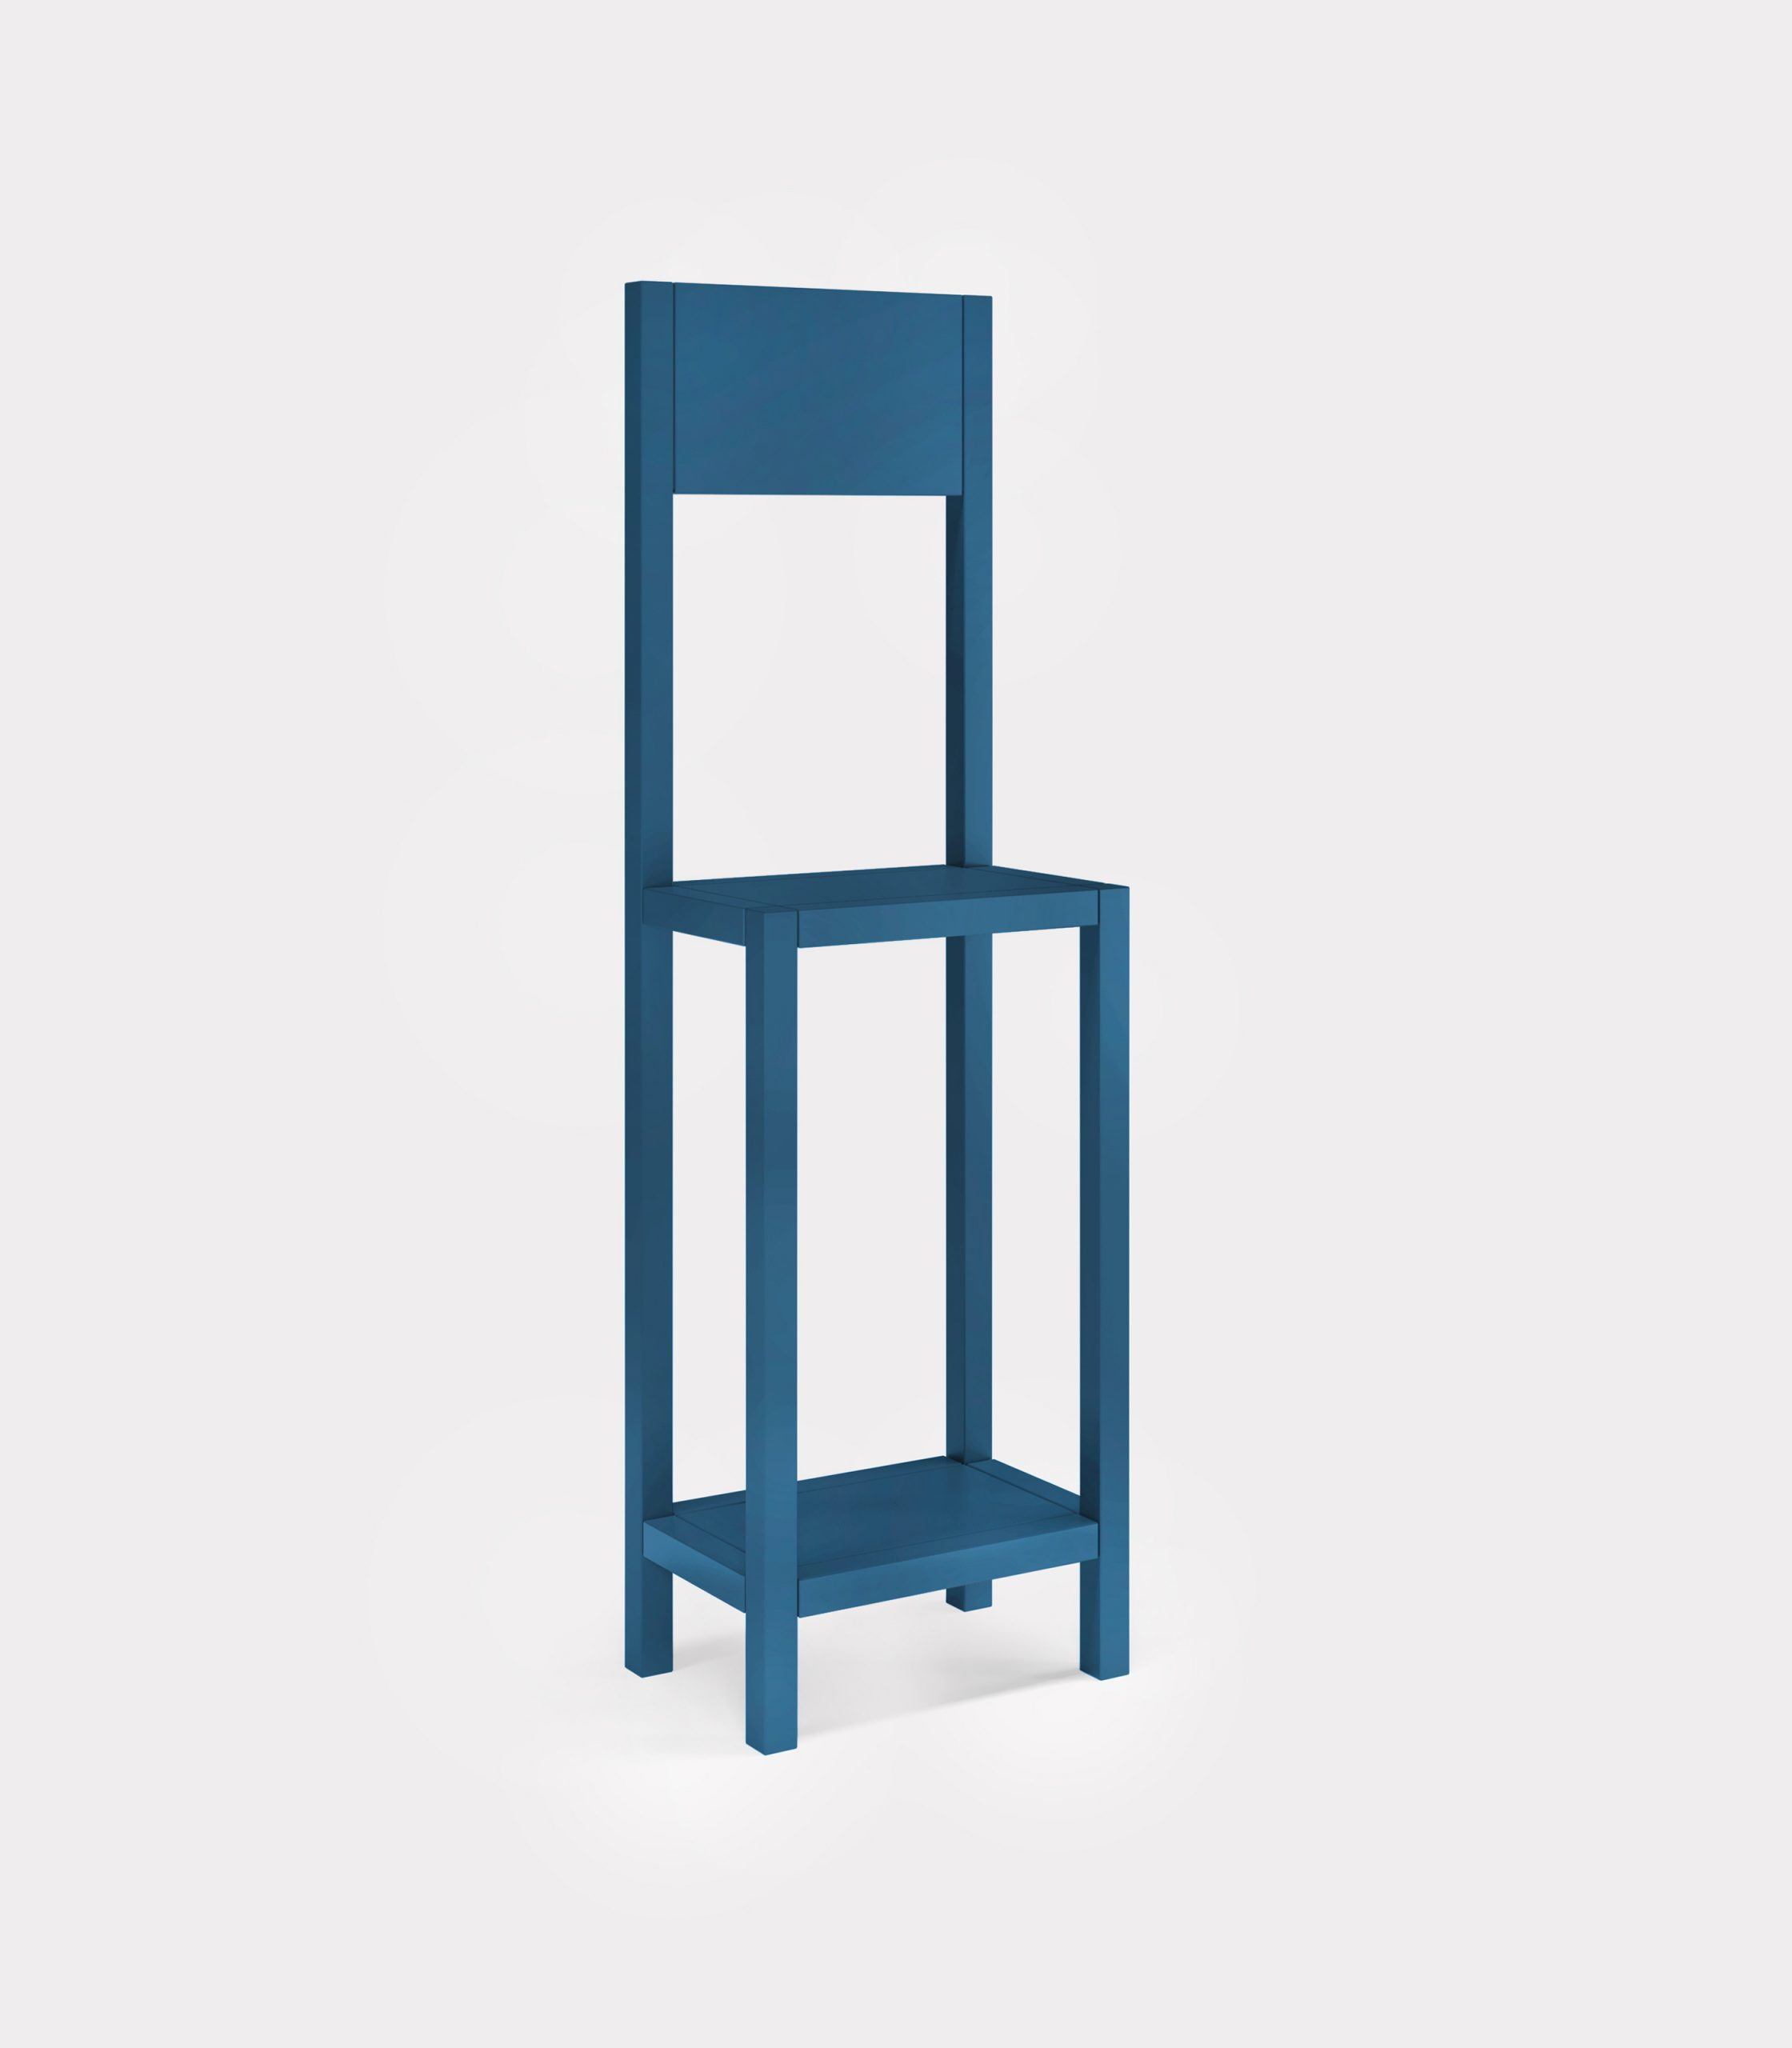 Petrol blue chair for an unexpected guest loopo milano design FD